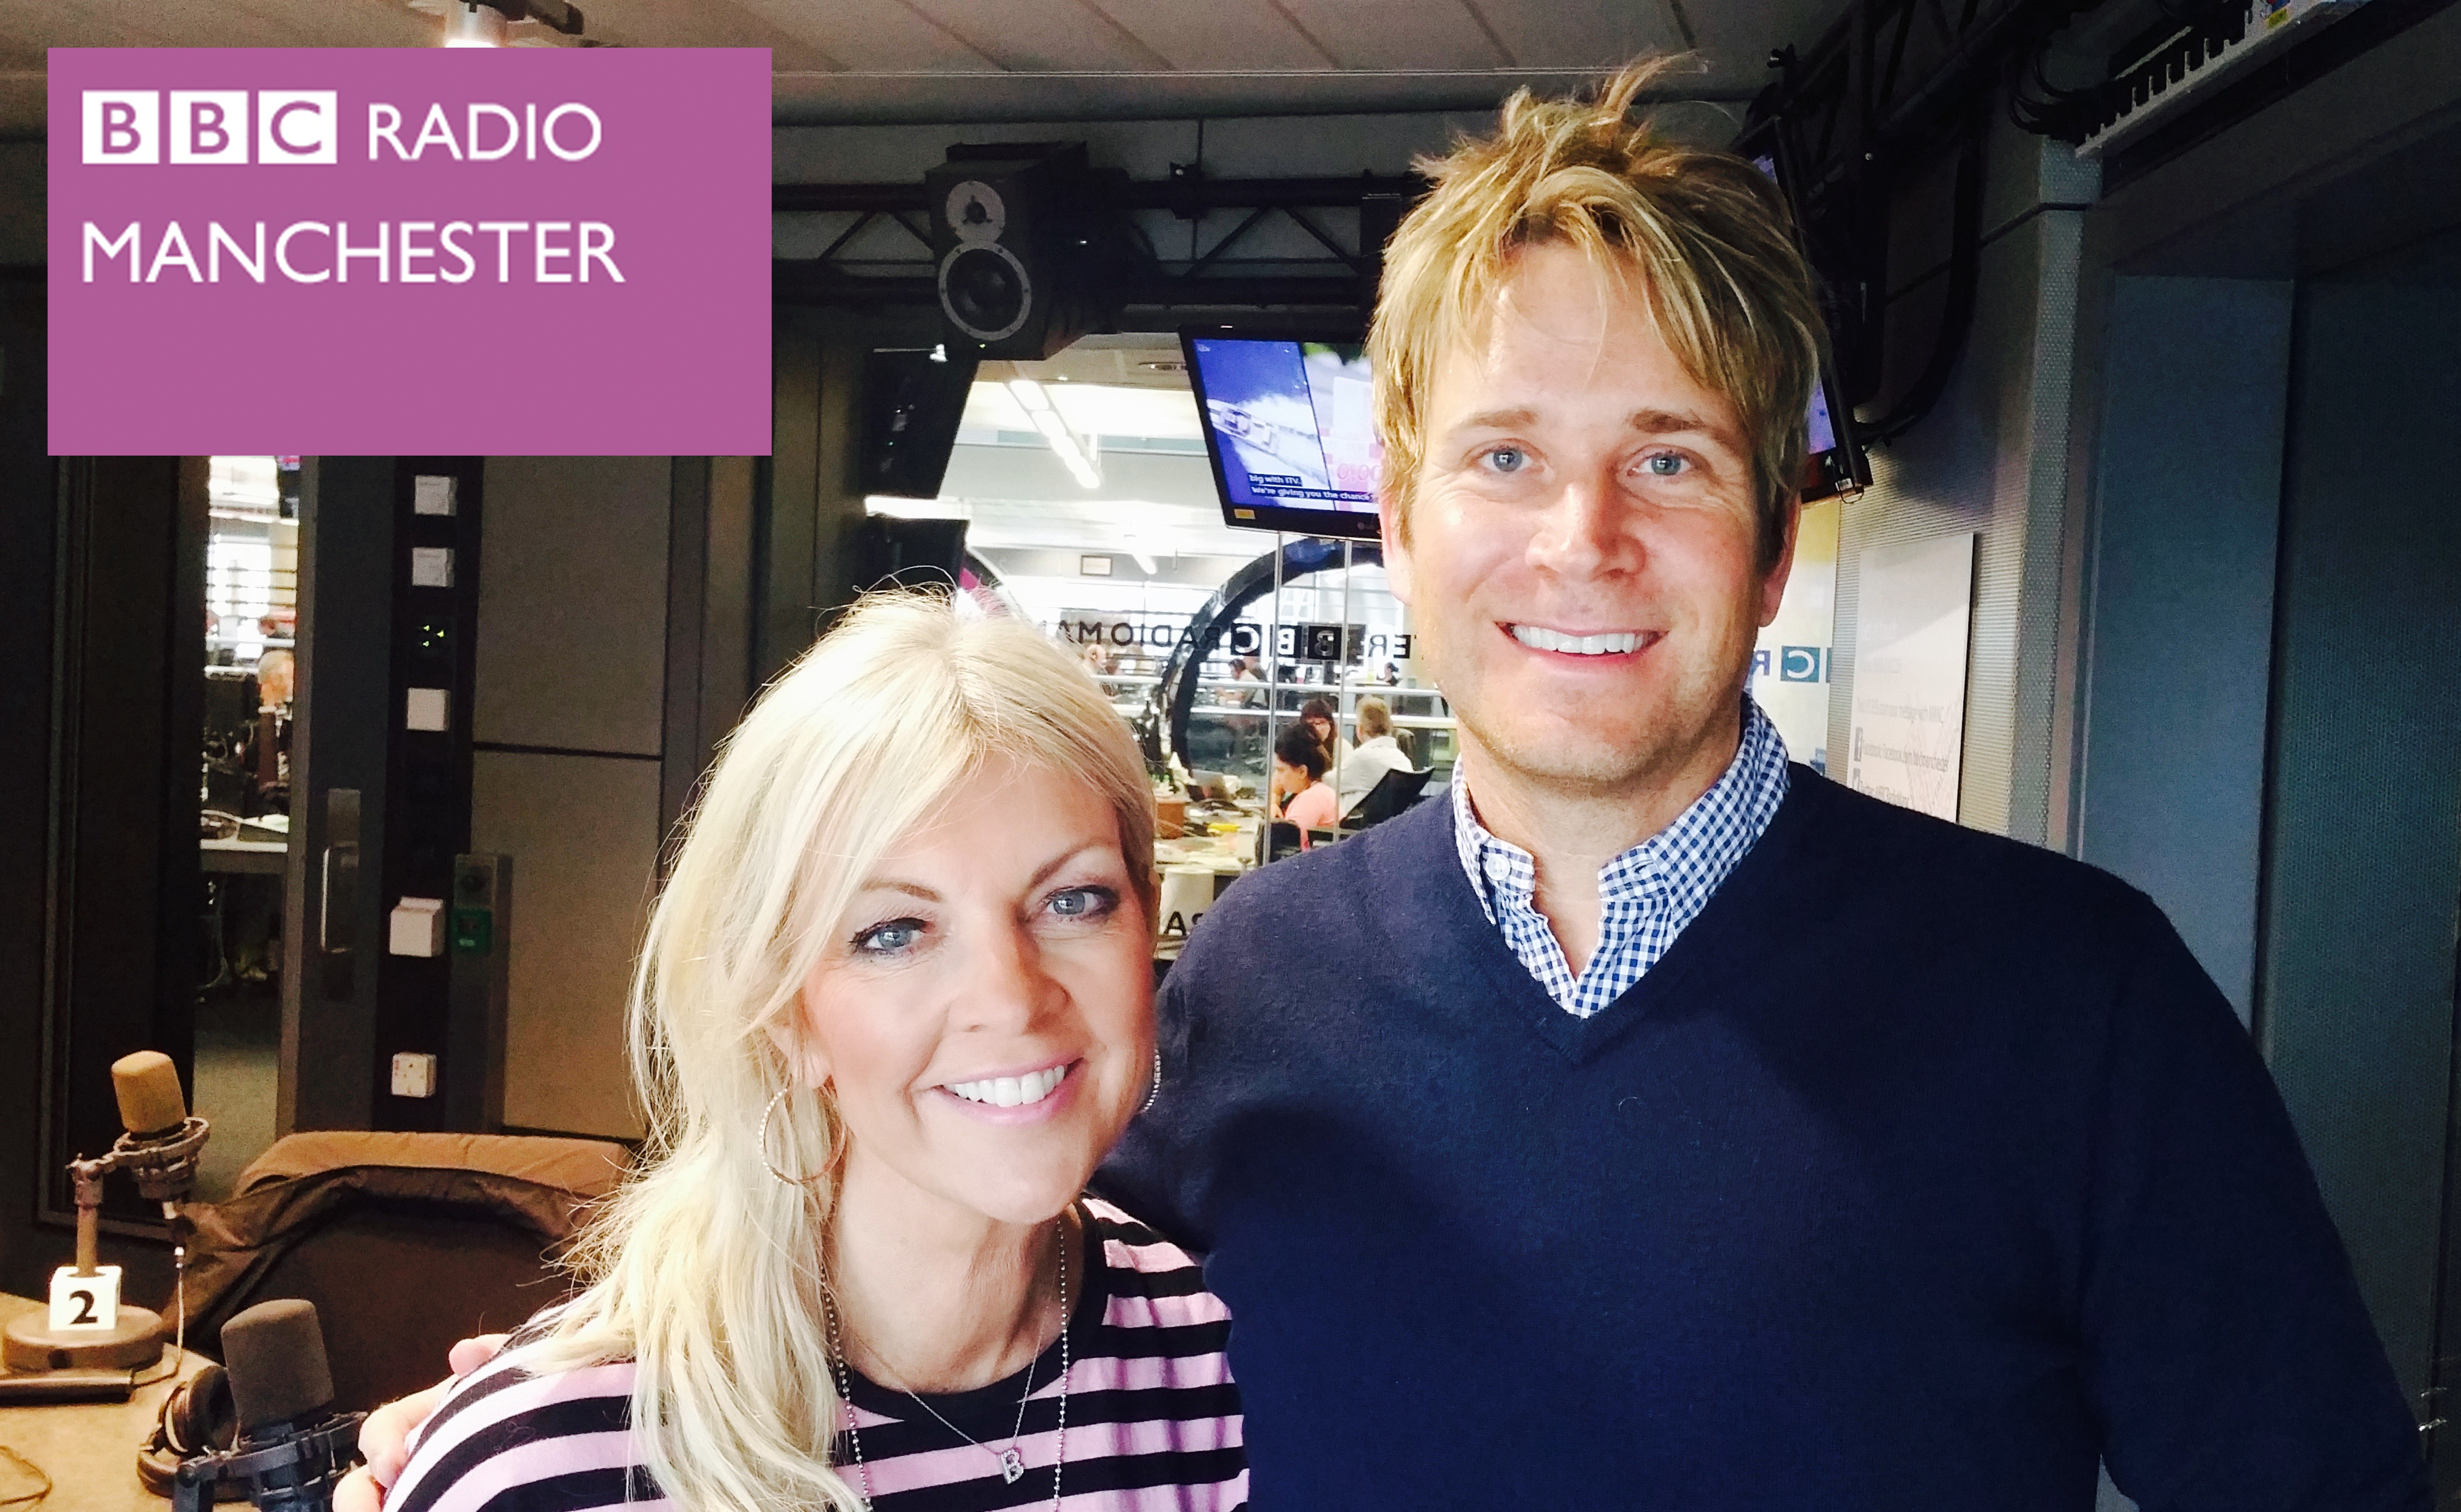 BBC RADIO MANCHESTER: Hopwood DePree on The Becky Want Show – 31st May 2018: By Factory, Digital Agency In Manchester